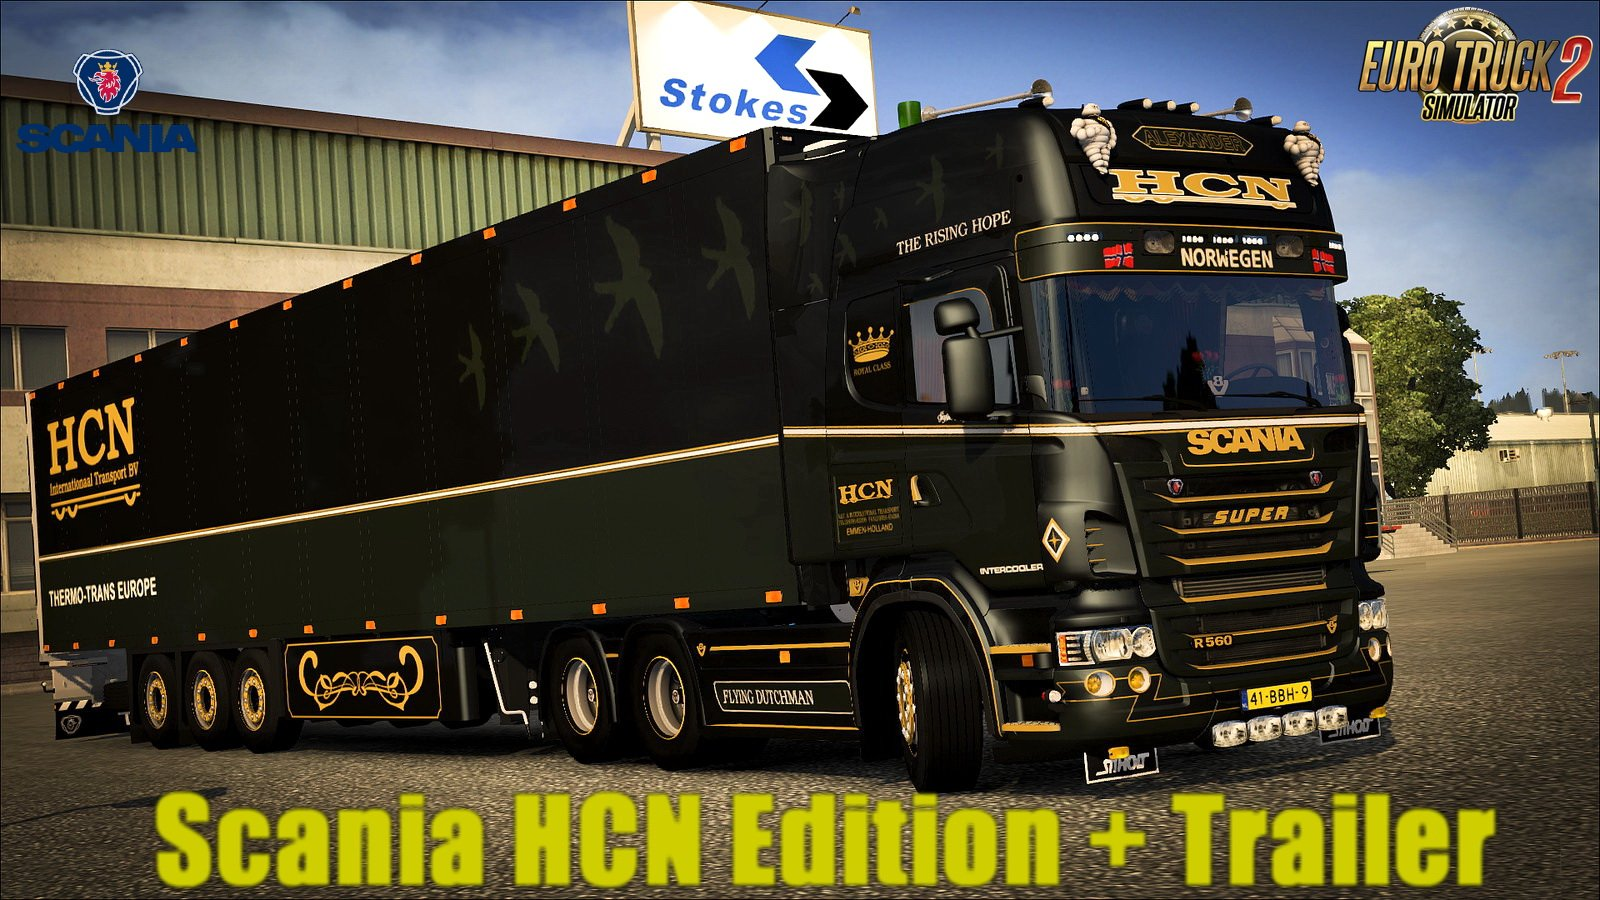 Scania R500 HCN Edition + Trailer v1.0 (1.28.x)